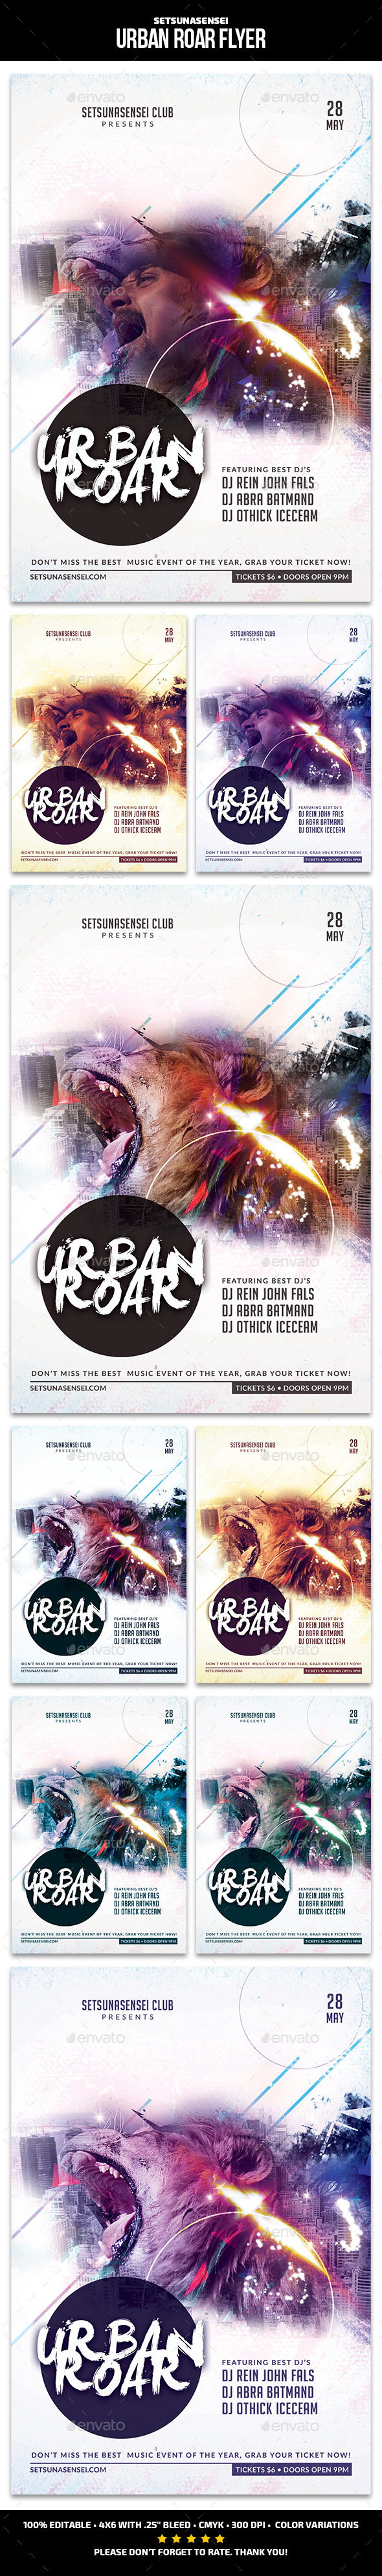 GraphicRiver Urban Roar Flyer 11300858